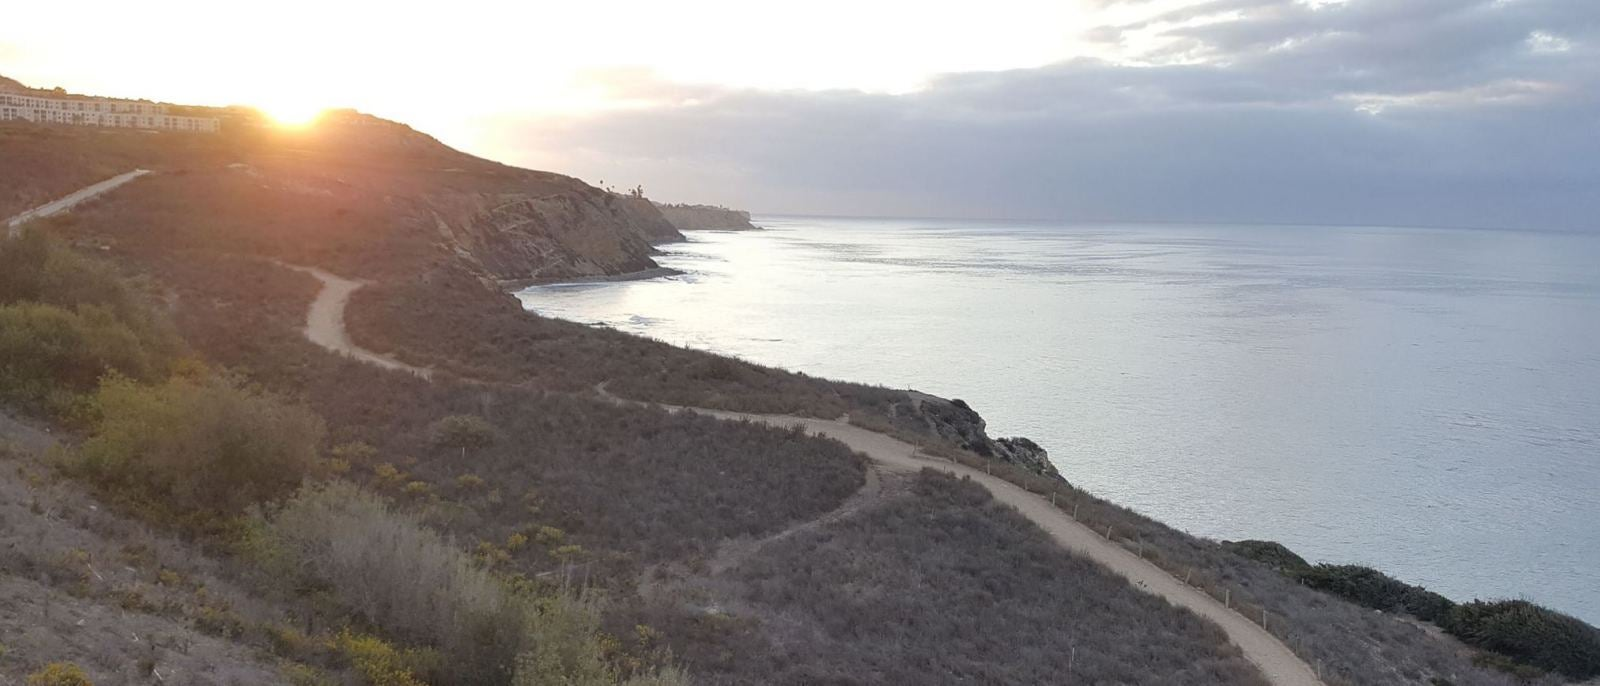 Ocean Trails Reserve in Rancho Palos Verdes